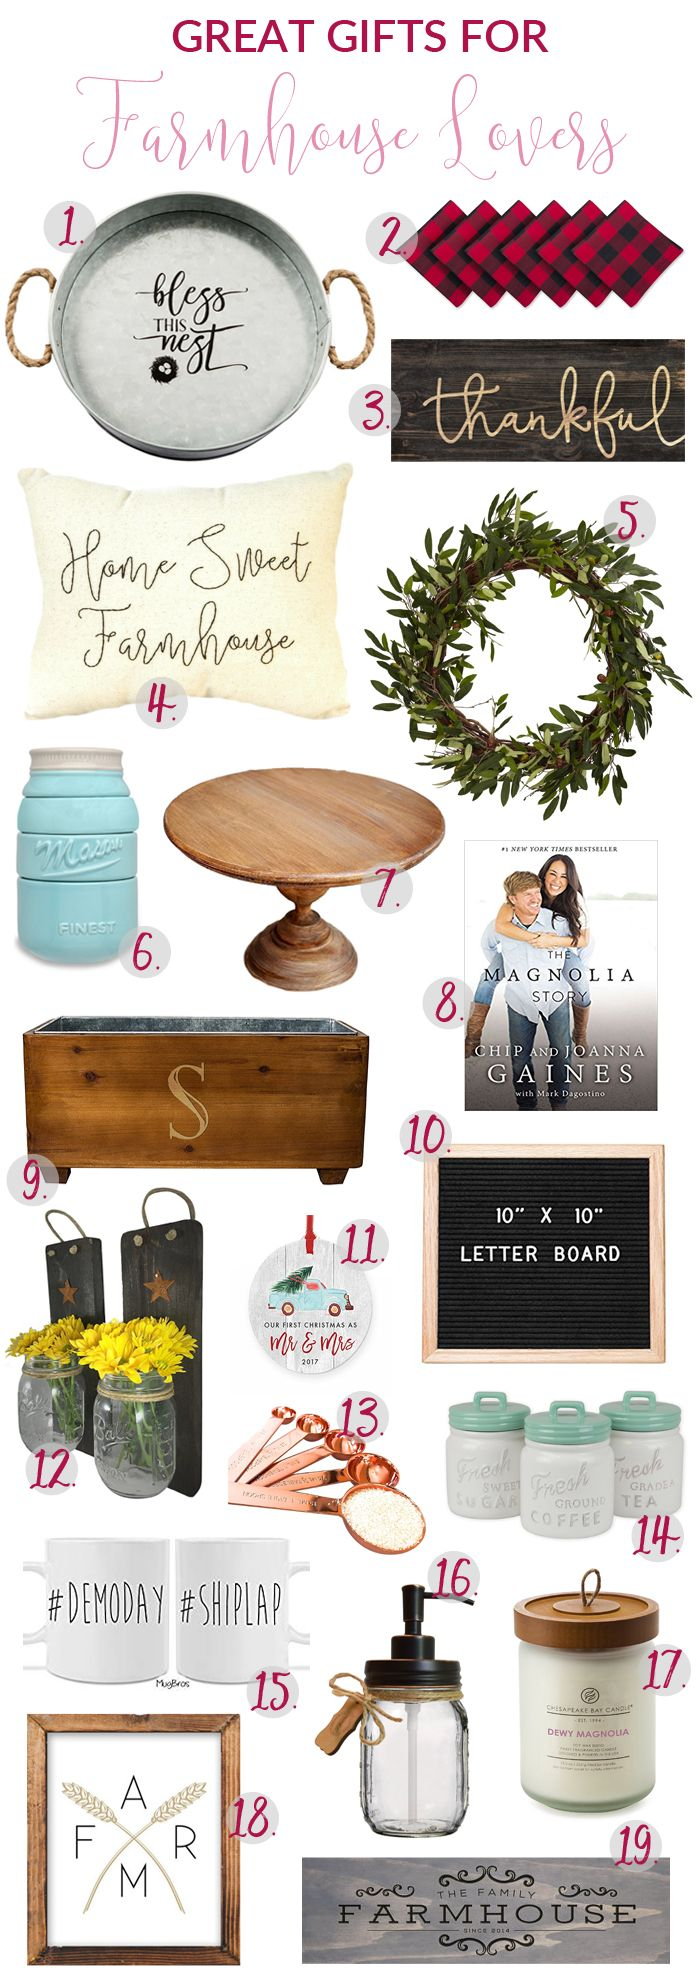 If you share my obsession with all things farmhouse, or you've got one of those farmhouse lovers on your gift list this year, this is the gift guide for you!     #farmhouselove #giftguide #farmhouse #homedecor #farmhousedecor